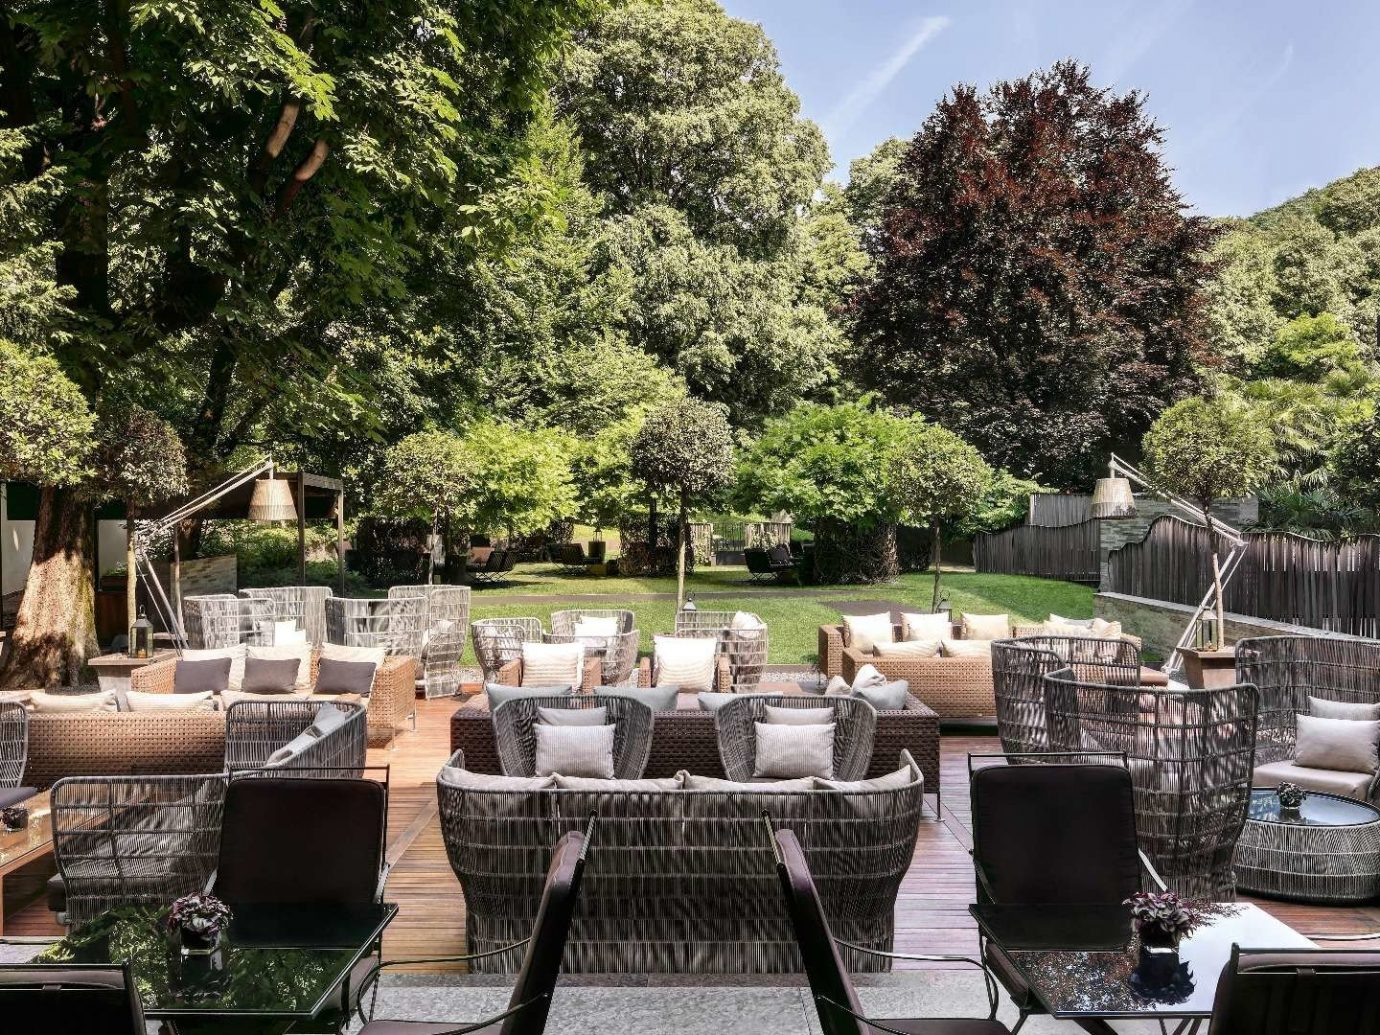 Hotels Italy Milan property backyard Patio outdoor structure estate home tree real estate plant interior design Resort landscaping